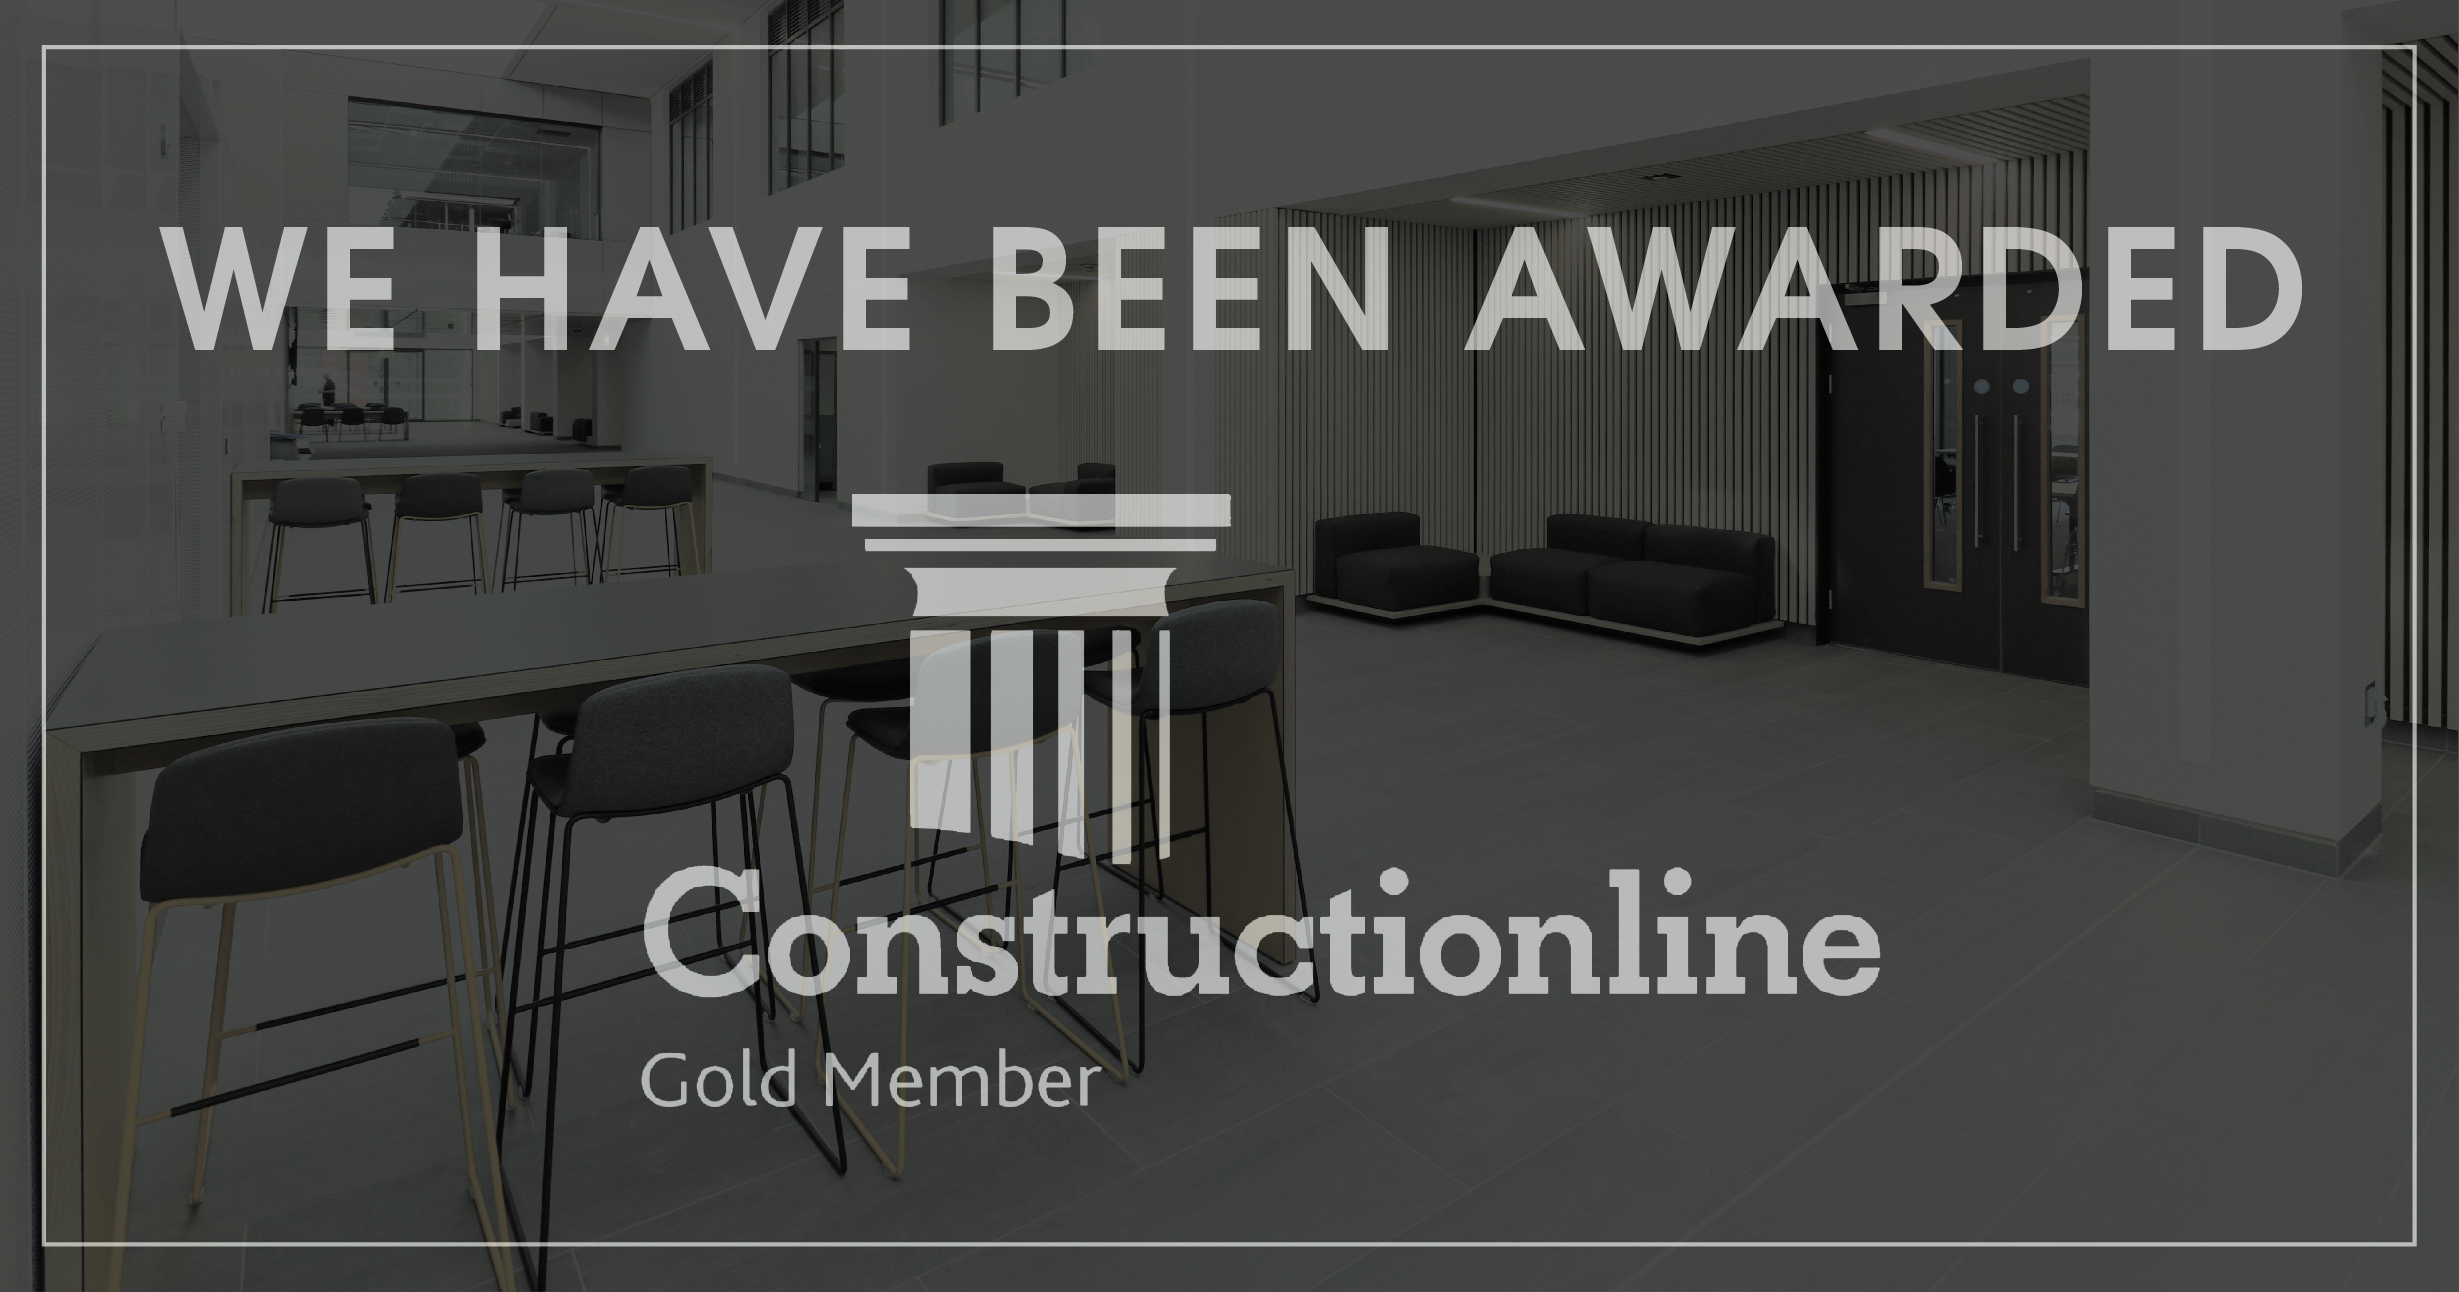 We have been awarded Constructionline Gold Membership